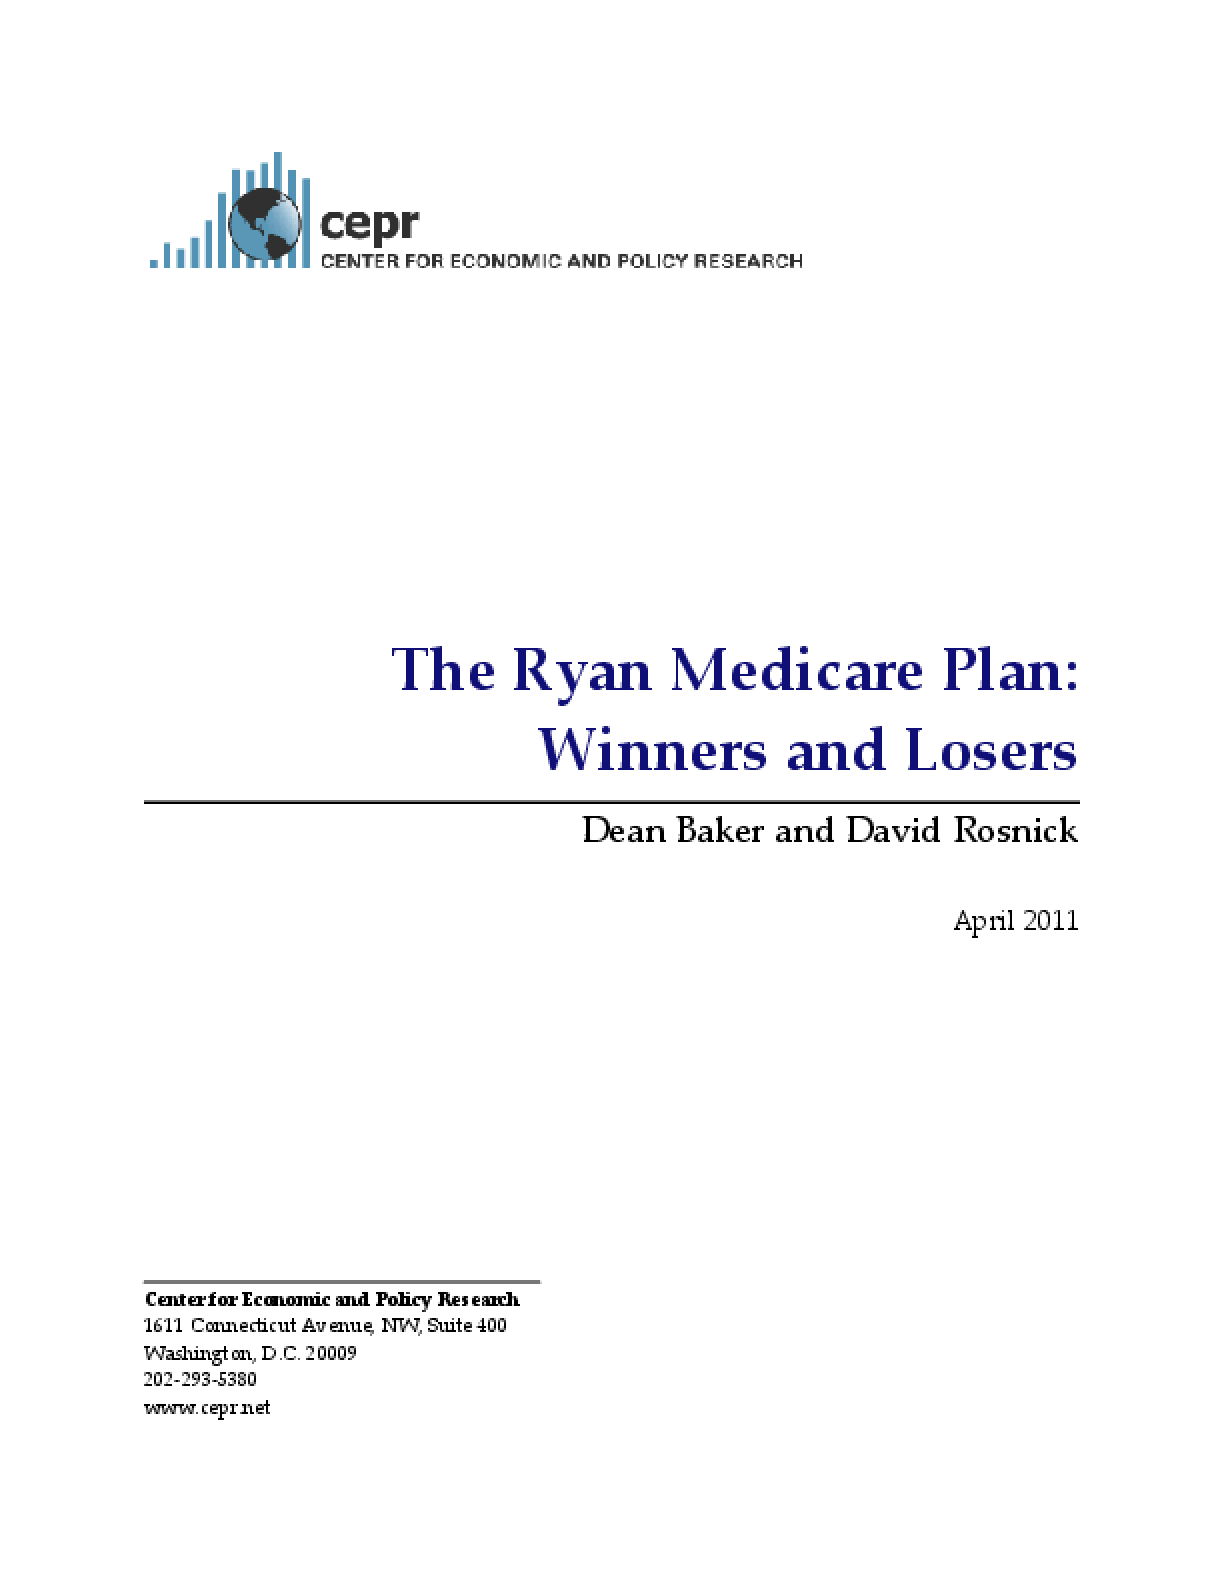 The Ryan Medicare Plan: Winners and Losers